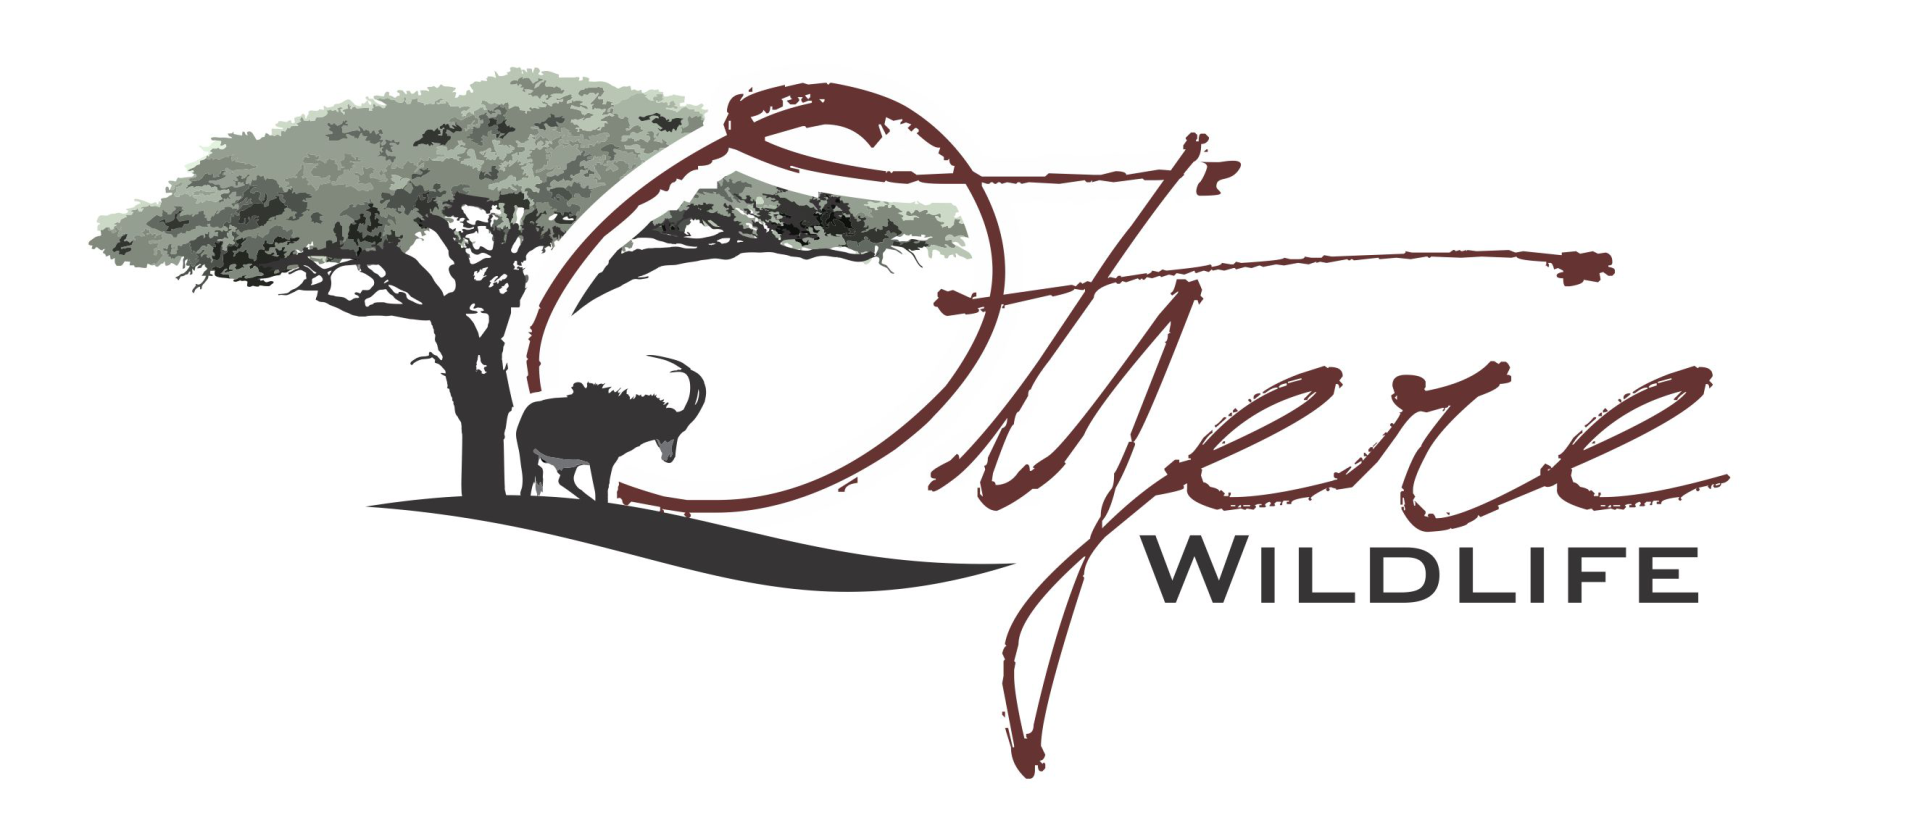 Hotel Management Software Clients - Otjere Wildlife